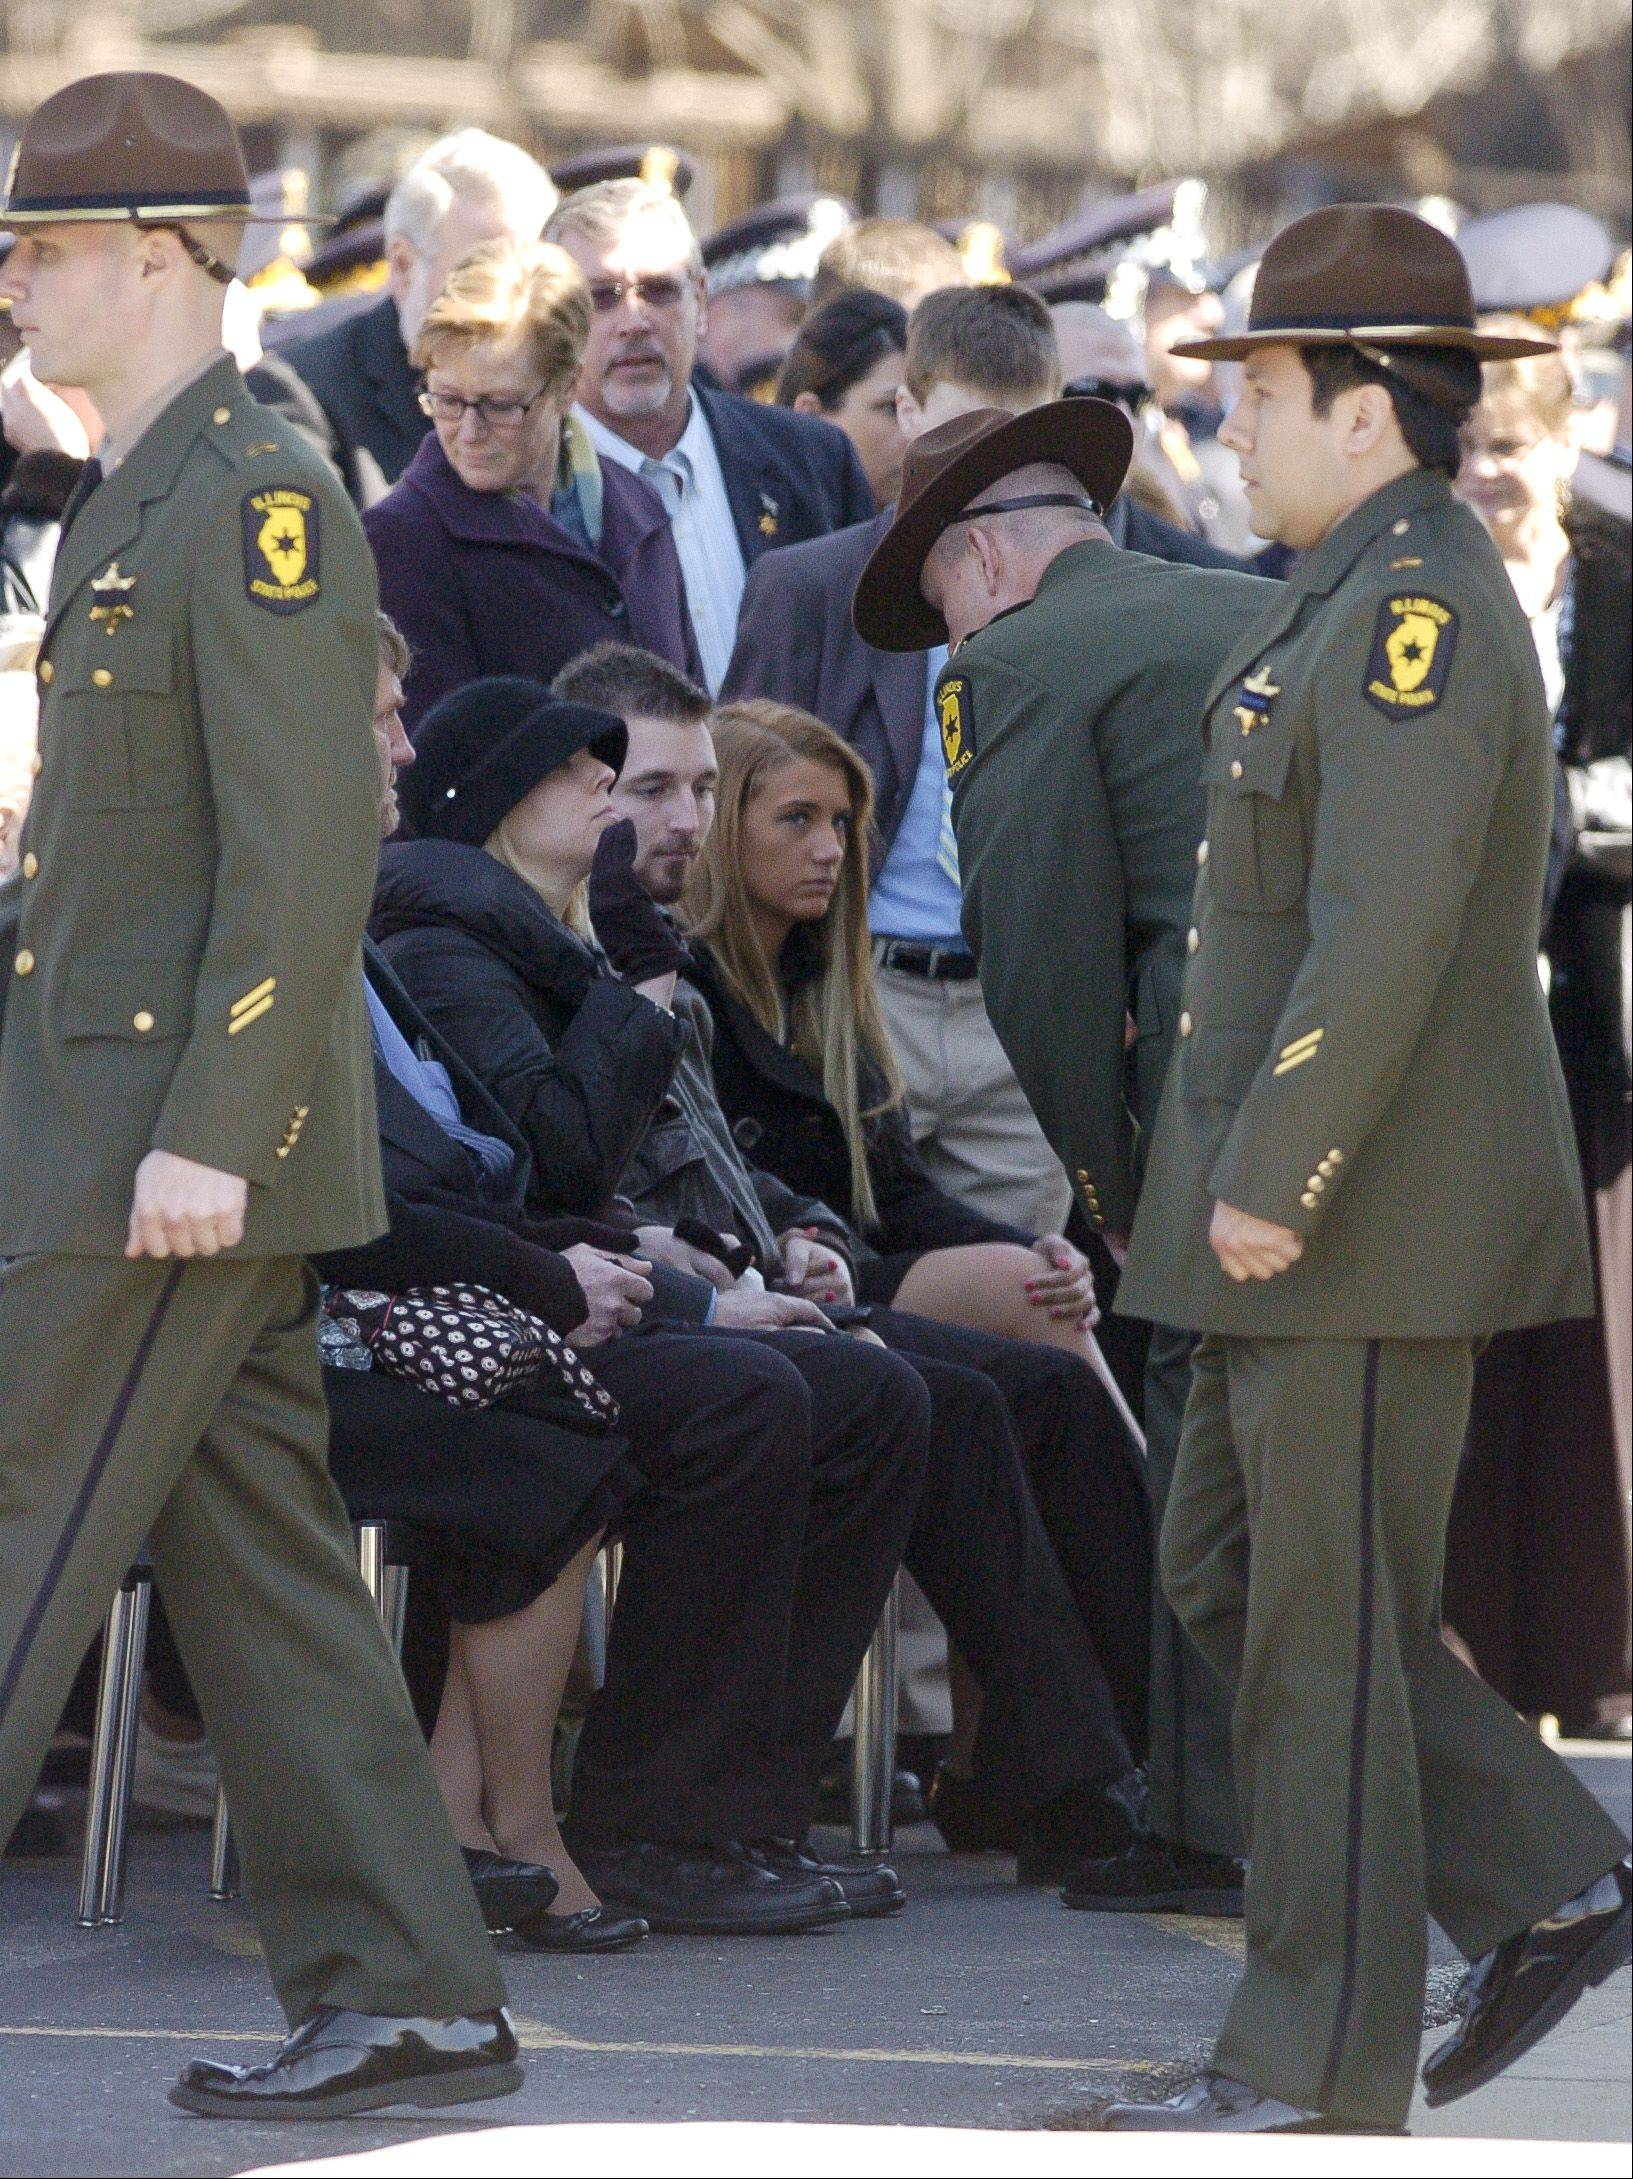 The family of Illinois State Police Trooper James Sauter watches as fellow troopers form ranks during the funeral service at Moraine Valley Church in Palos Heights Tuesday morning.